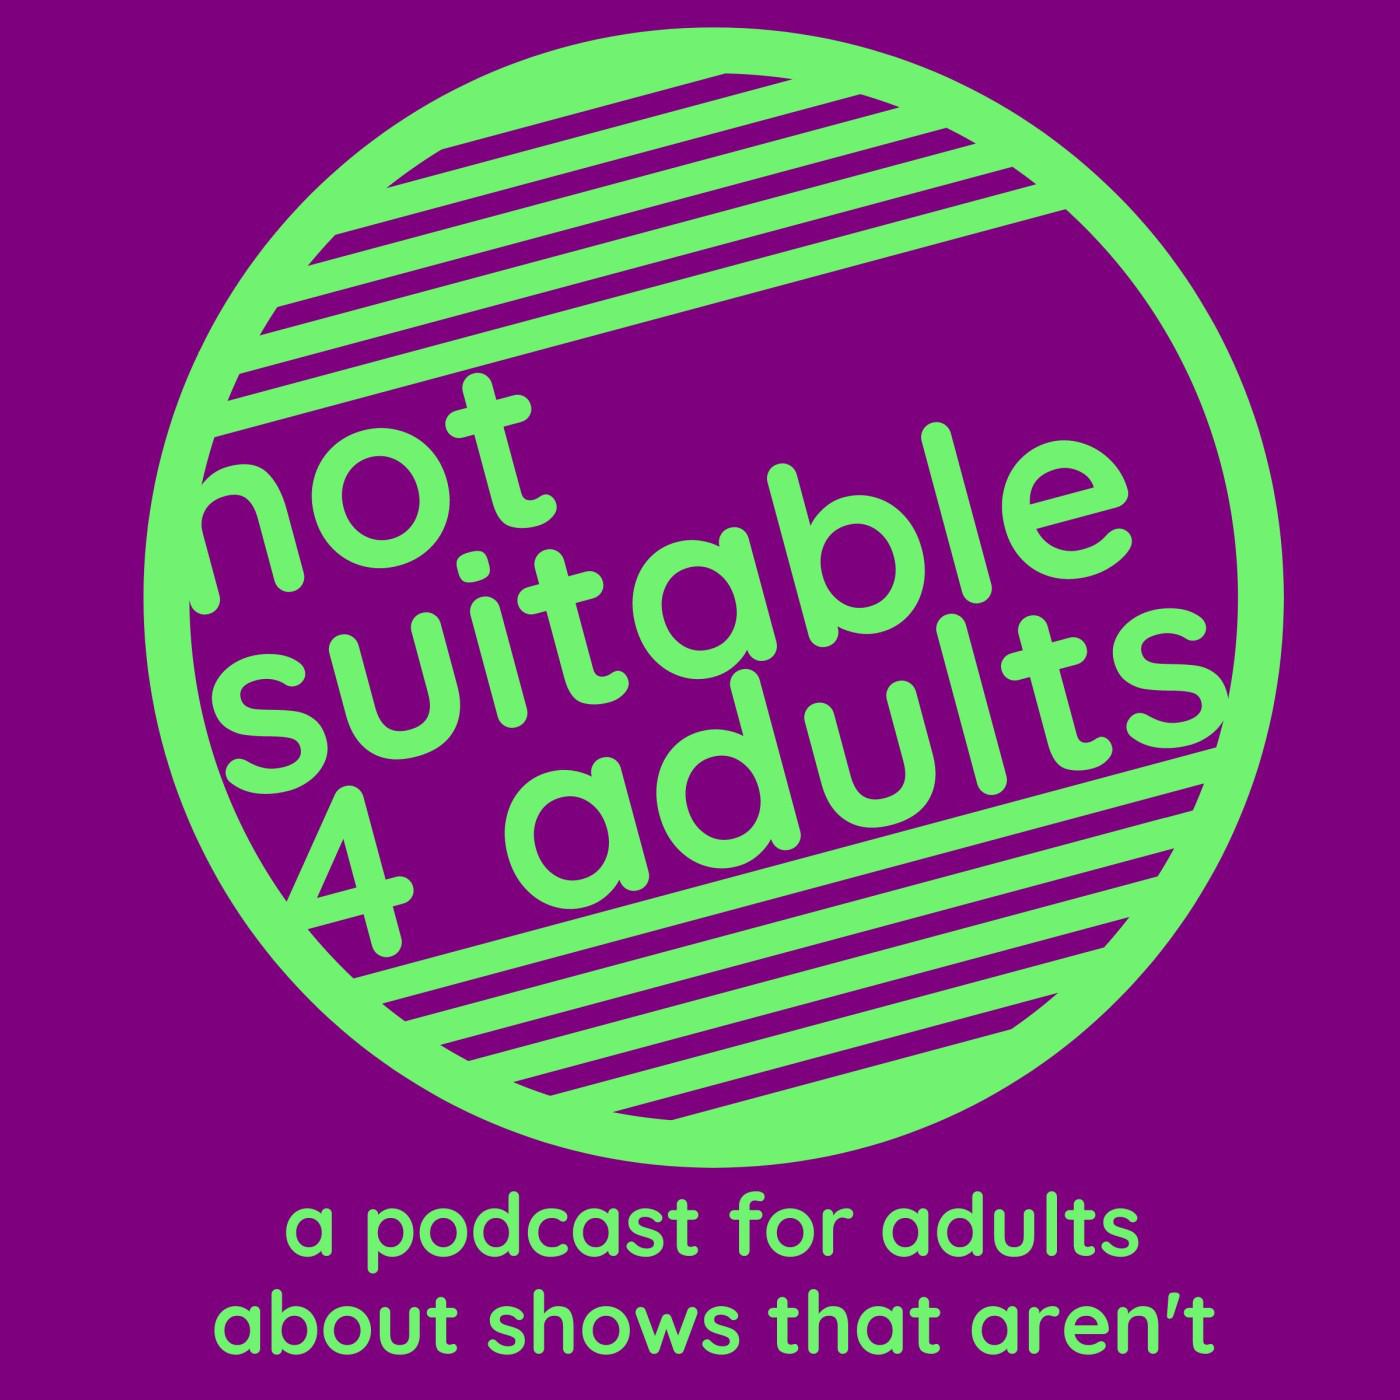 Not Suitable for Adults podcast logo